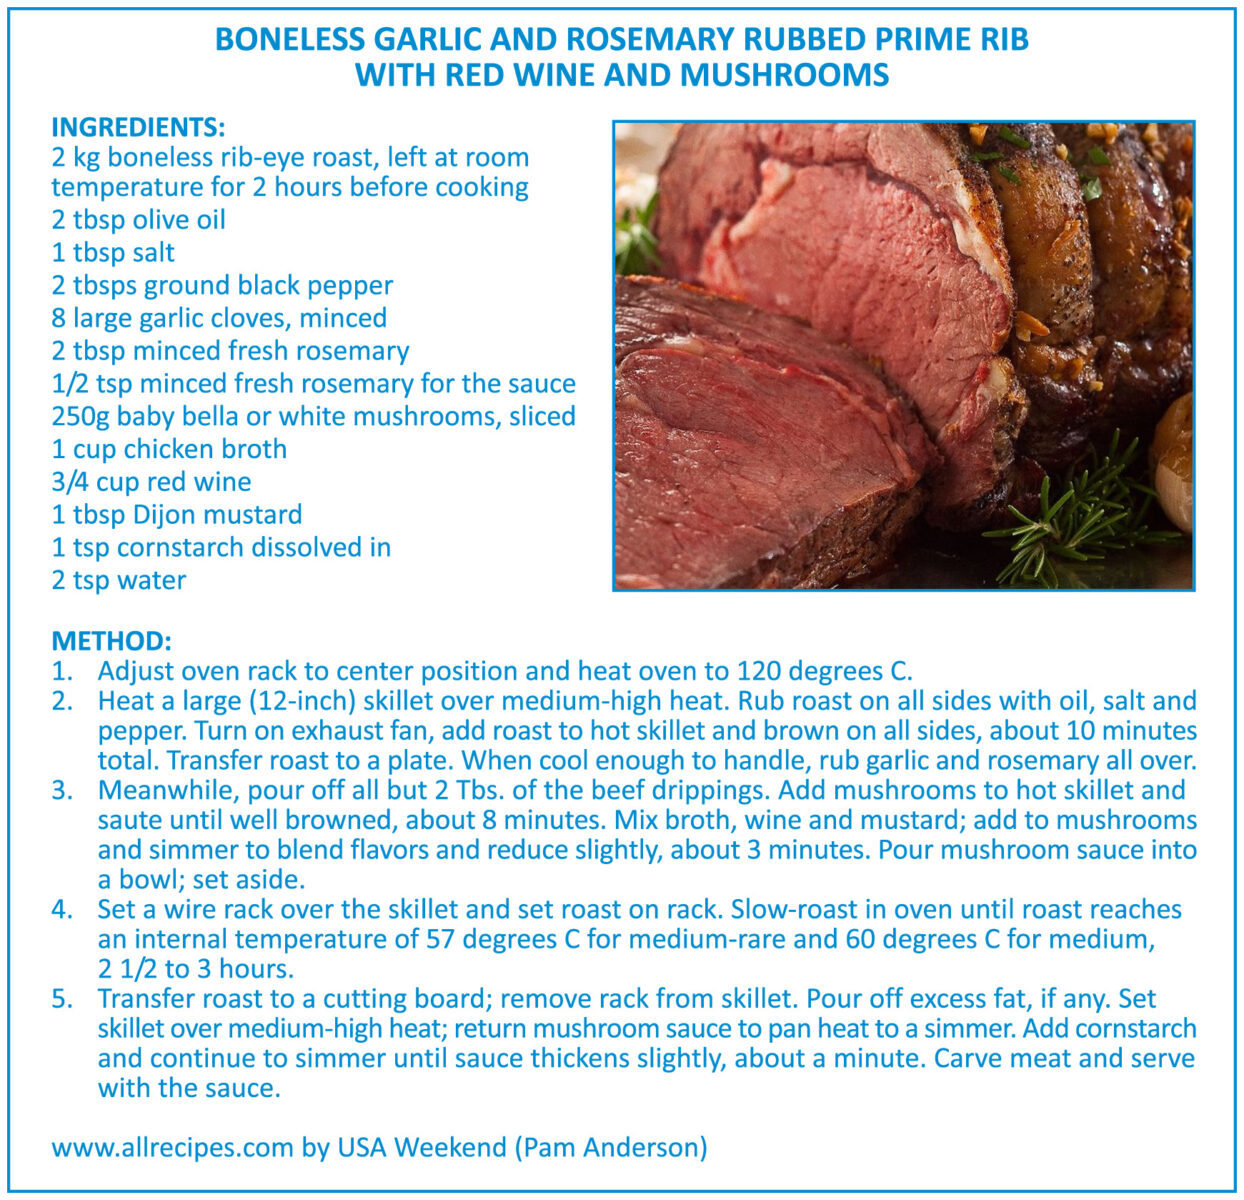 Boneless Garlic and Rosemary Rubbed Prime Rib with Red Wine and Mushrooms